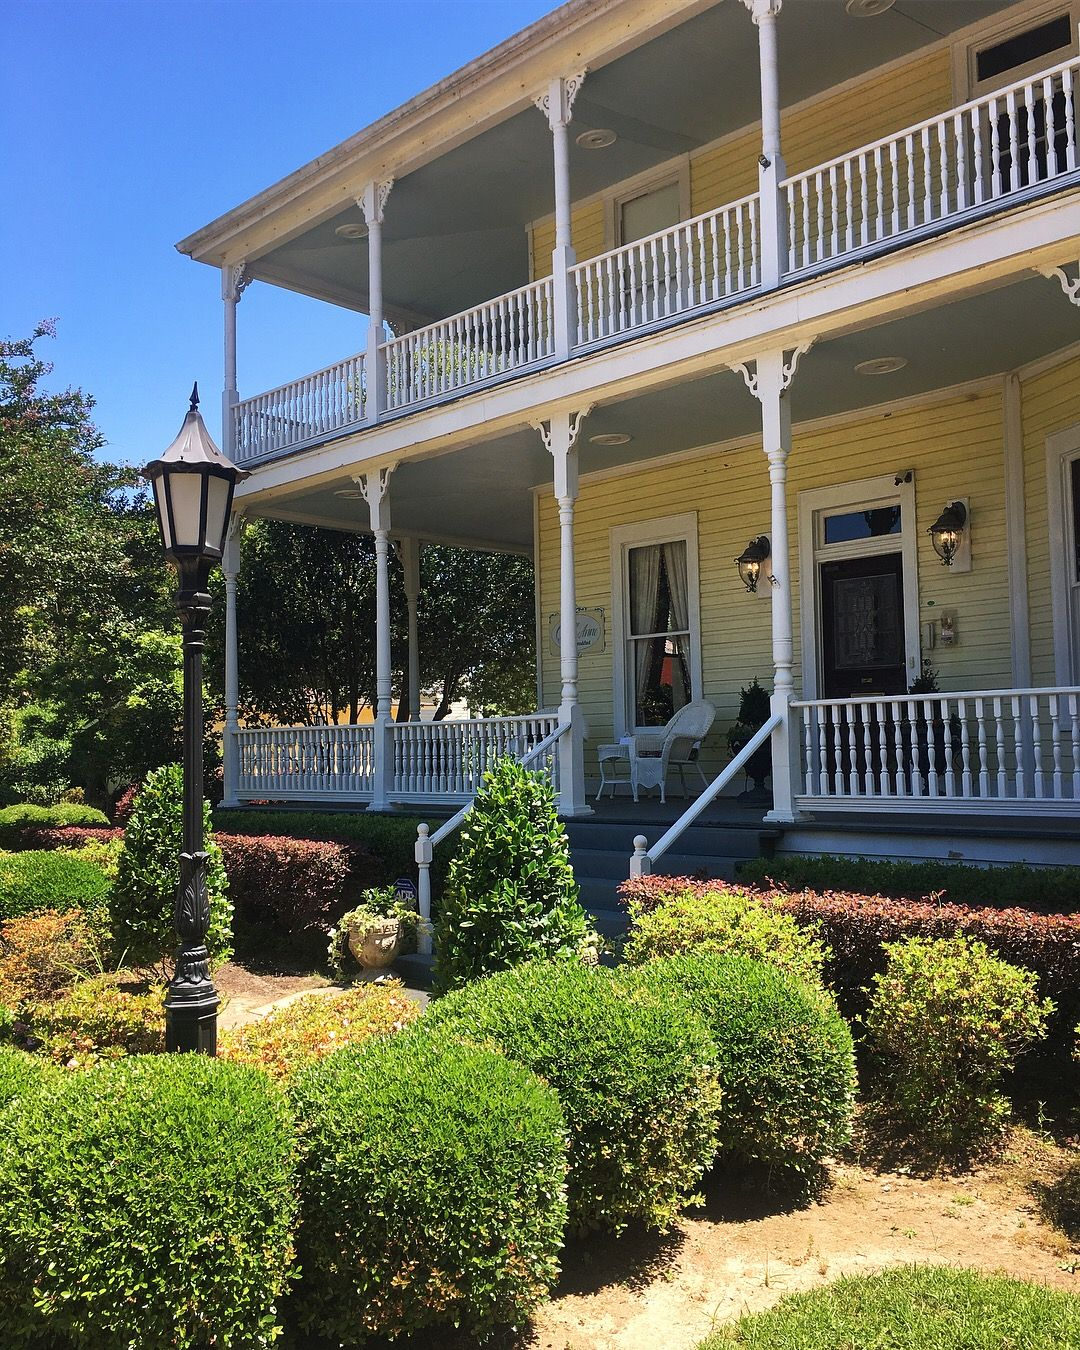 The Queen Anne Bed & Breakfast. Natchitoches, Louisiana